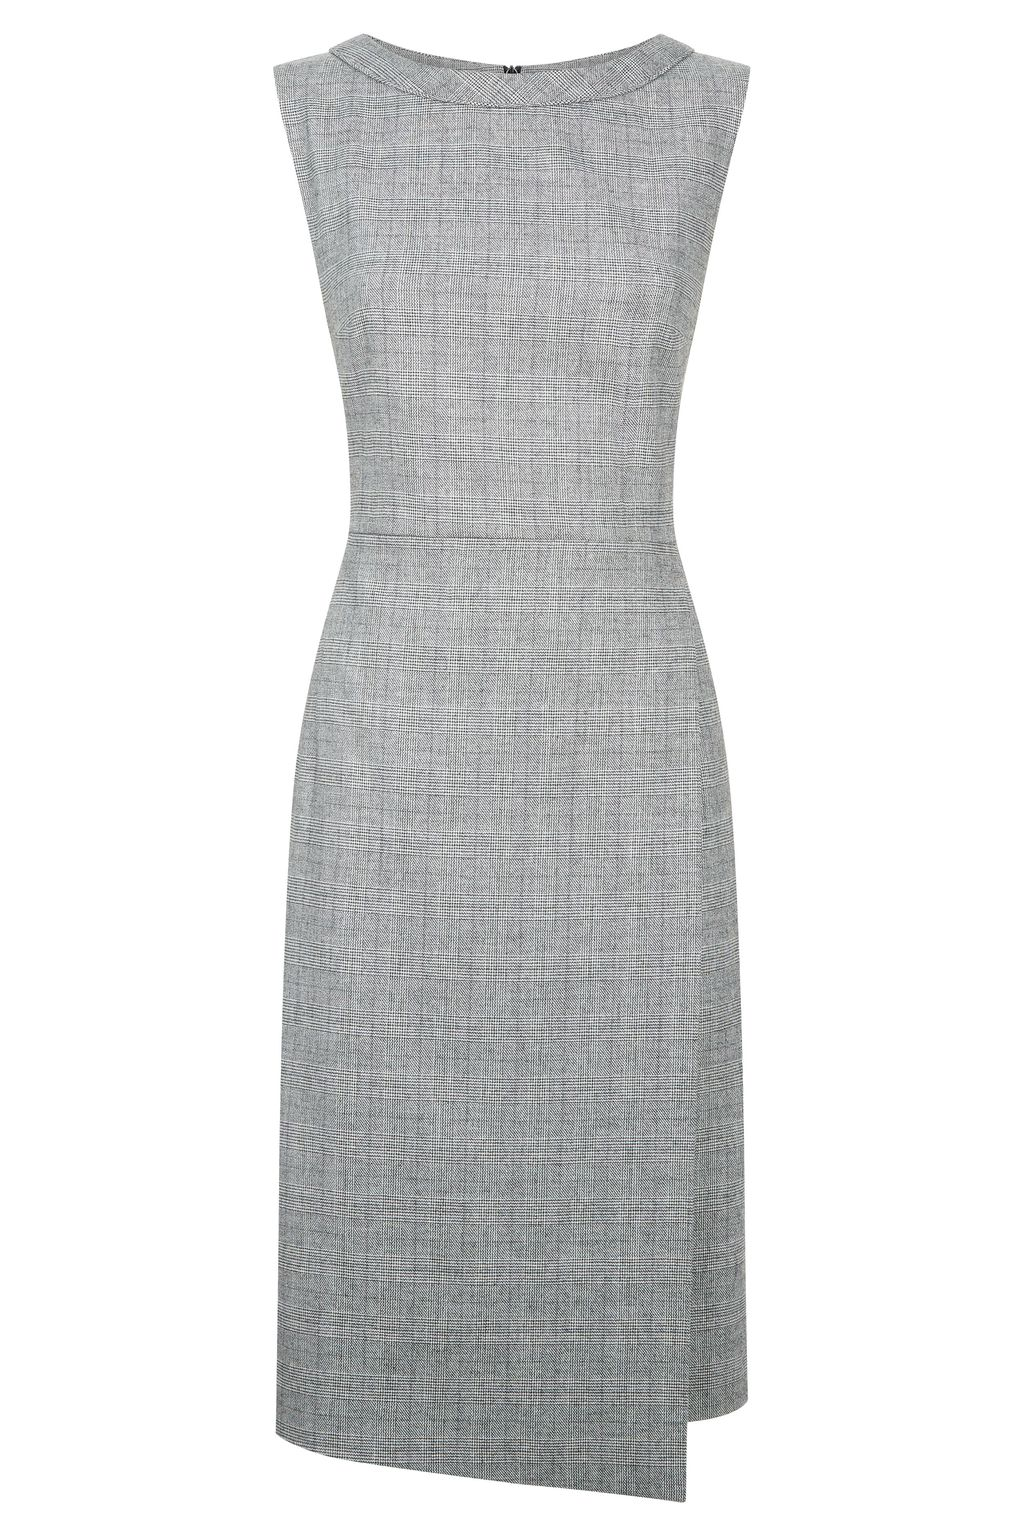 Asteroid Dress, Grey - style: shift; fit: tailored/fitted; sleeve style: sleeveless; pattern: checked/gingham; predominant colour: light grey; occasions: work; length: on the knee; fibres: polyester/polyamide - stretch; neckline: crew; sleeve length: sleeveless; pattern type: fabric; texture group: woven light midweight; season: a/w 2016; wardrobe: highlight